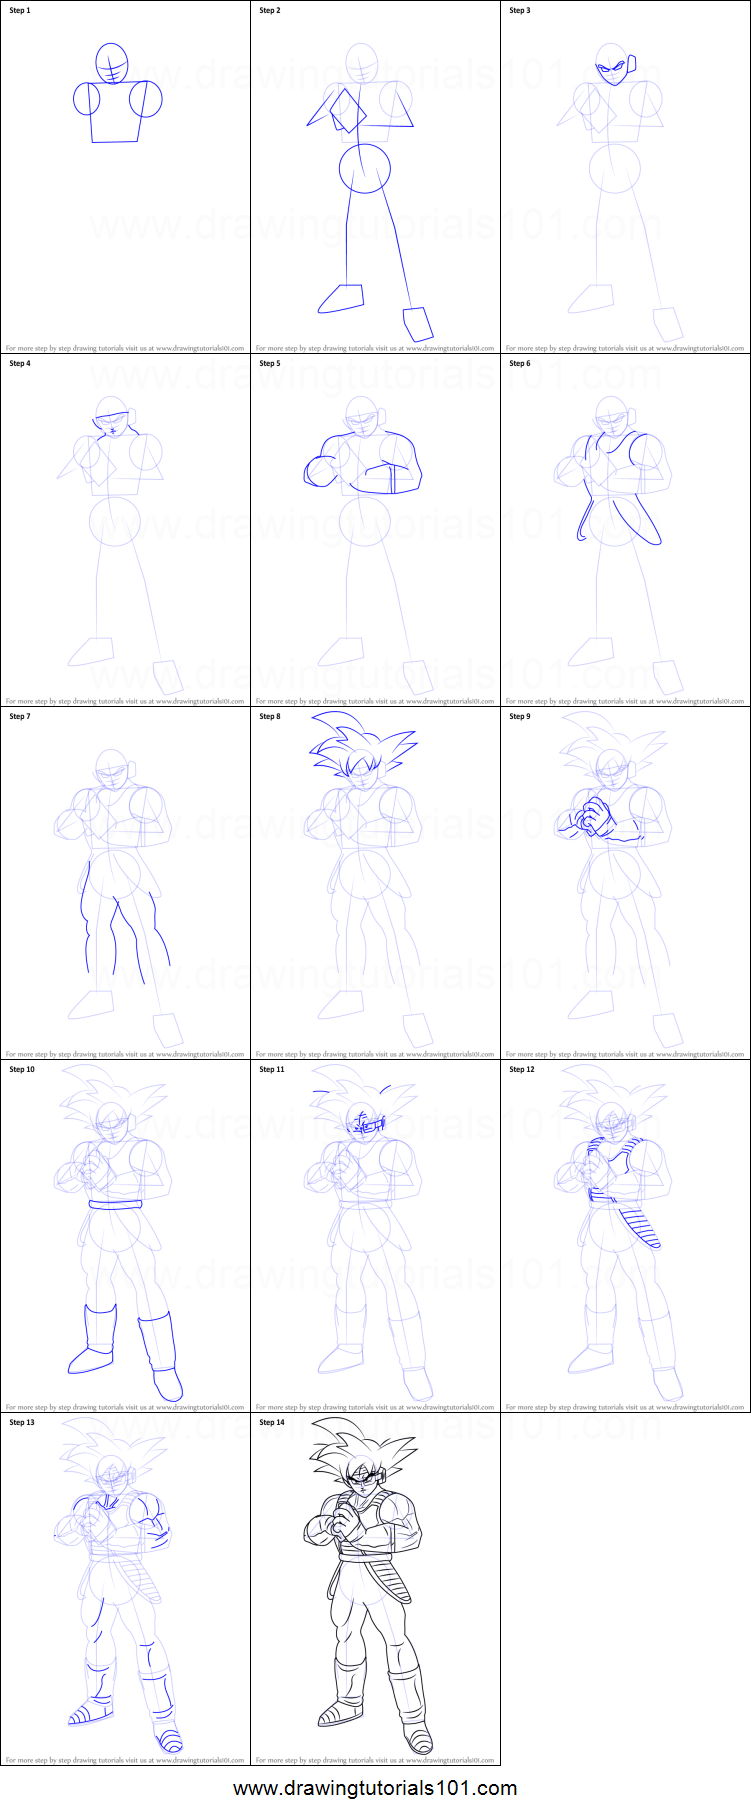 How To Draw Bardock Full Body From Dragon Ball Z Printable Step By Step Drawing Sheet Drawingtutorials101 Com